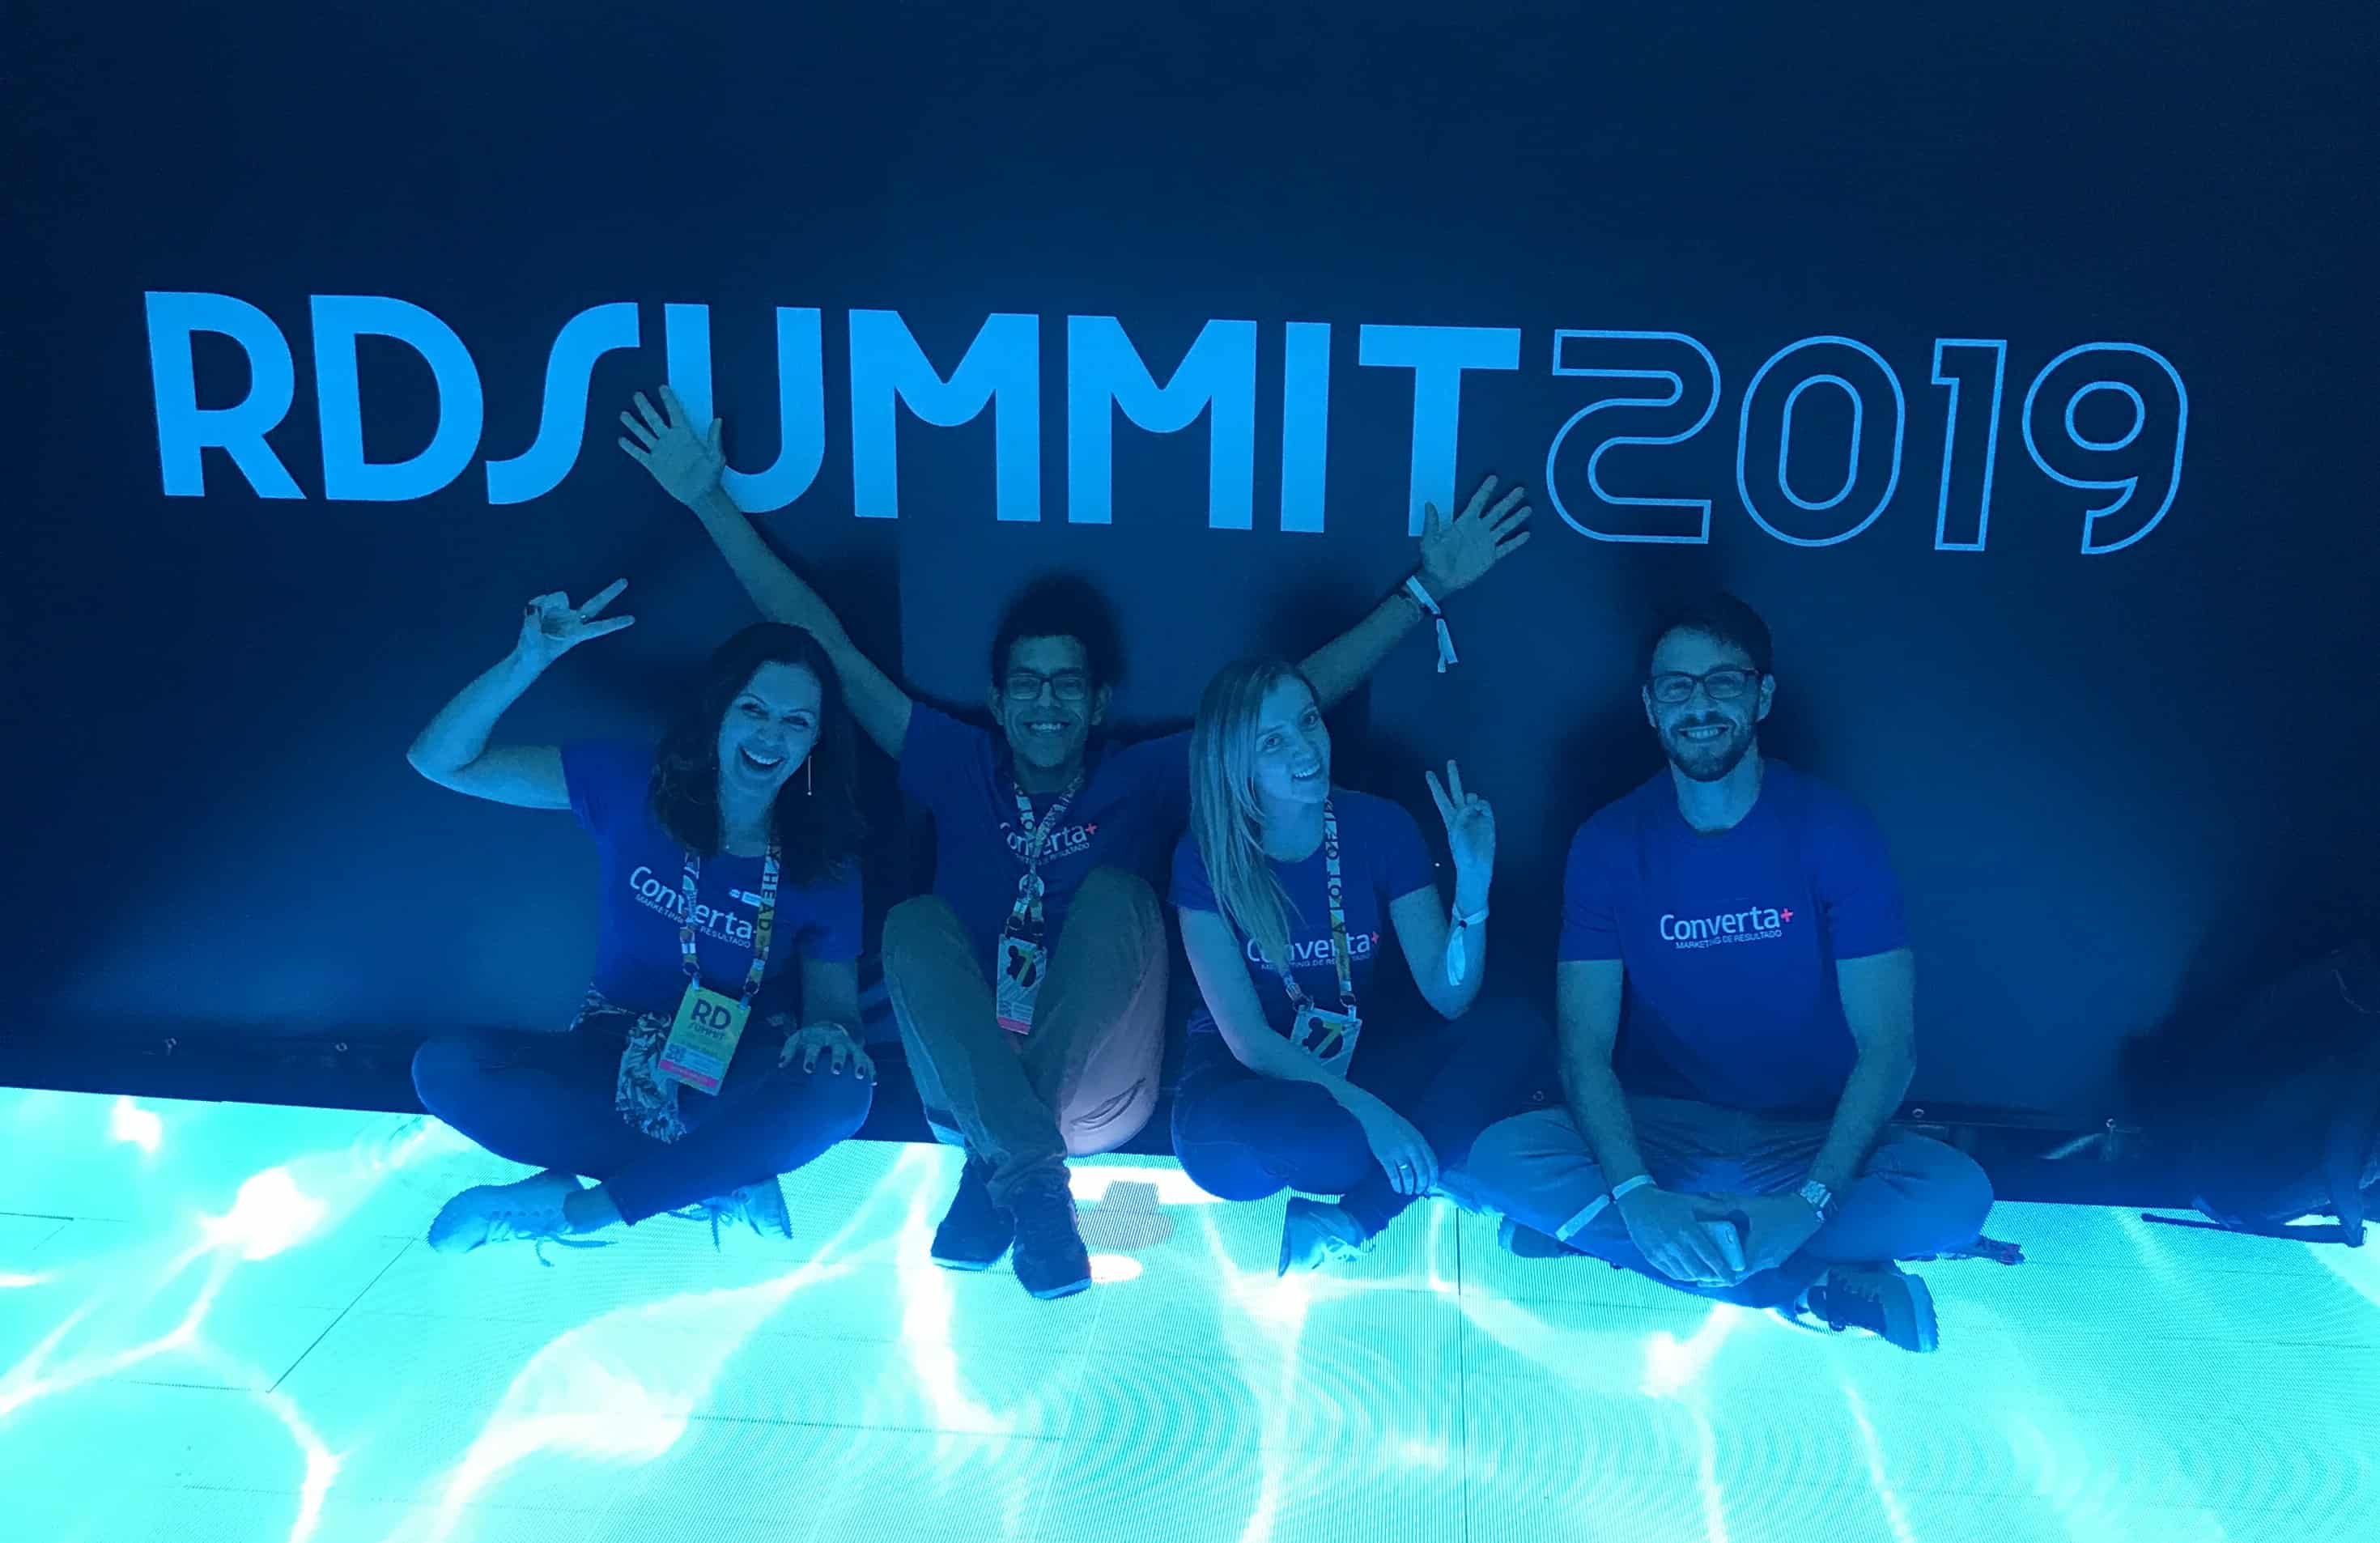 06 Converta Mais Rd Summit 2019